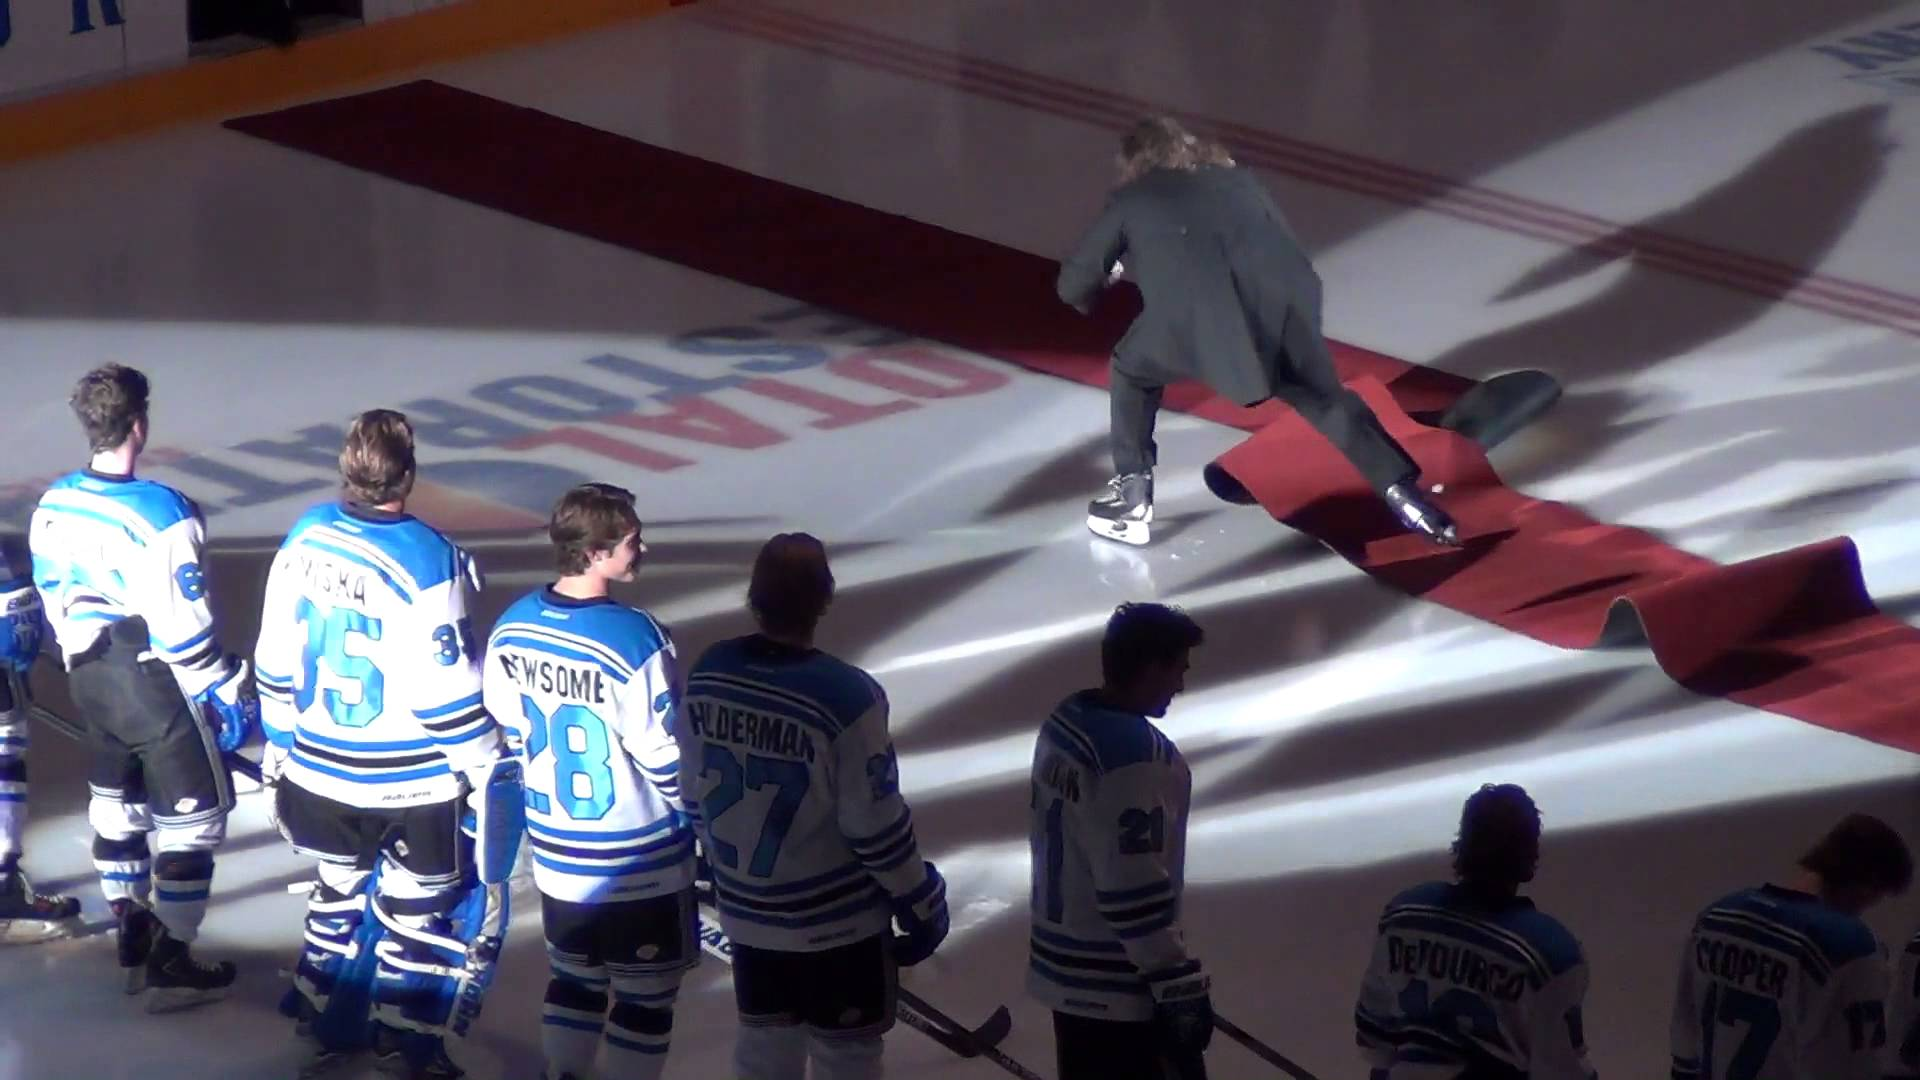 This National Anthem Singer Takes A Fall But Keeps Singing